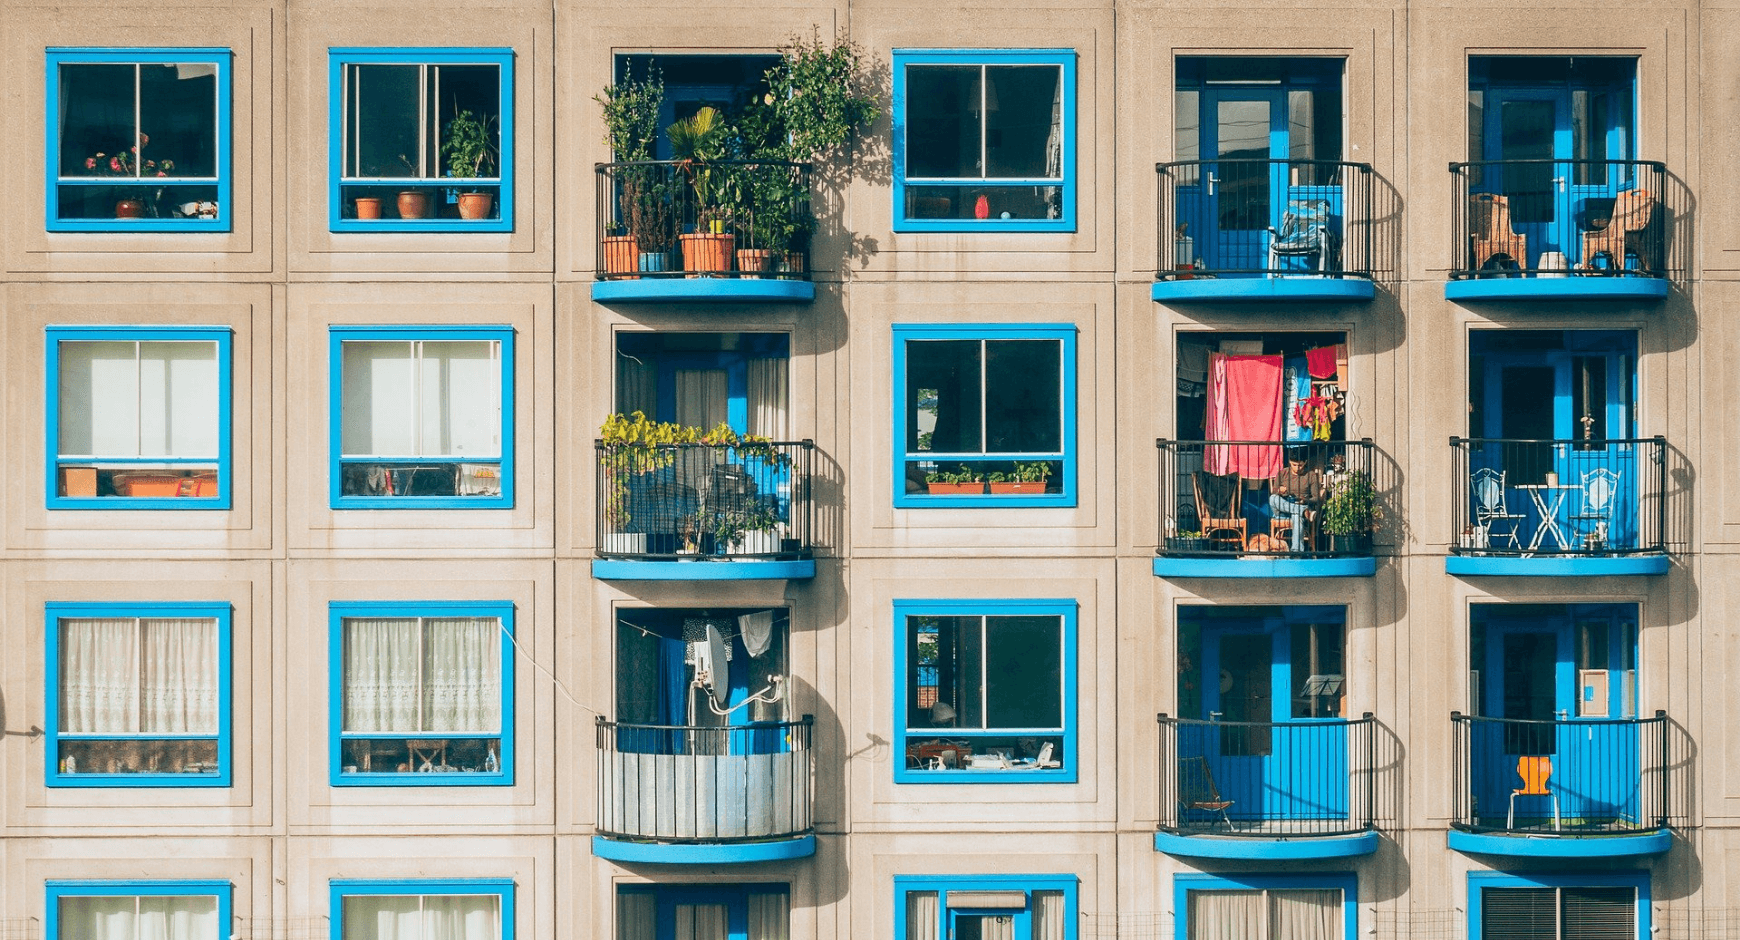 Image of an apartment building with fun, colorful exterior window trim